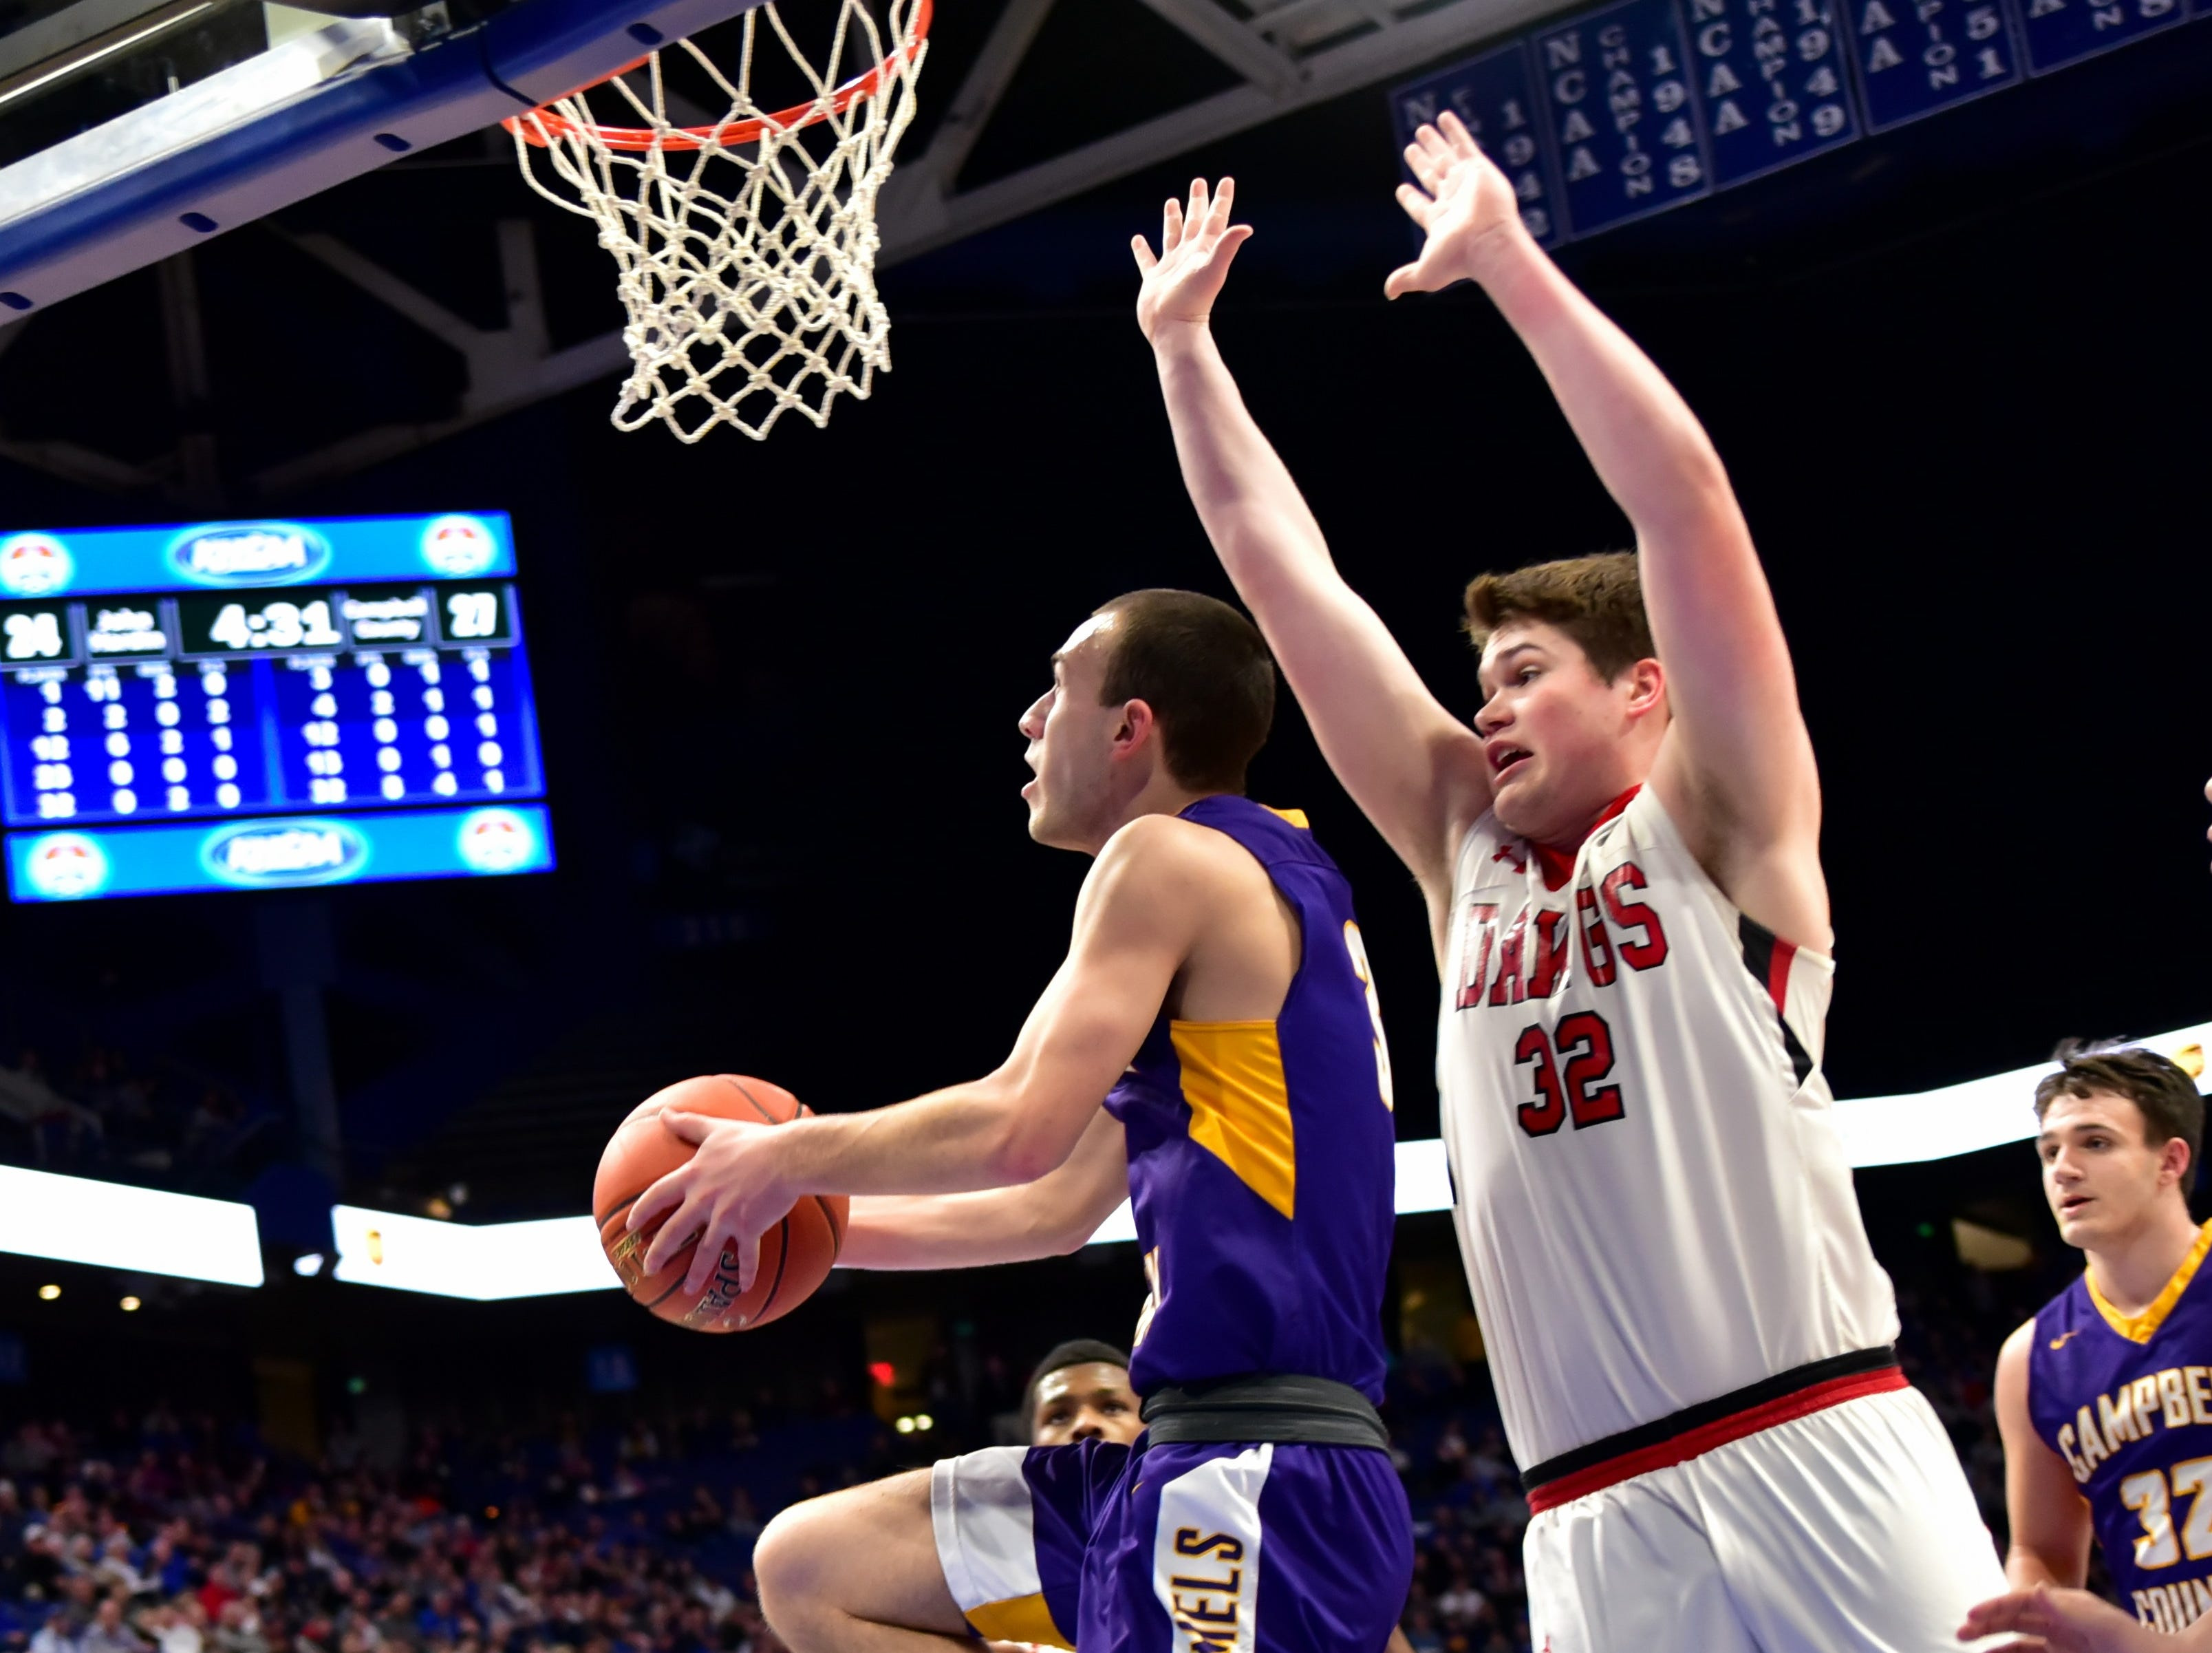 Noah Wirth (3) looks to drop in a back door layup for Campbell County at the KHSAA Sweet 16 Tournament at Rupp Arena in Lexington, KY, March 6, 2019